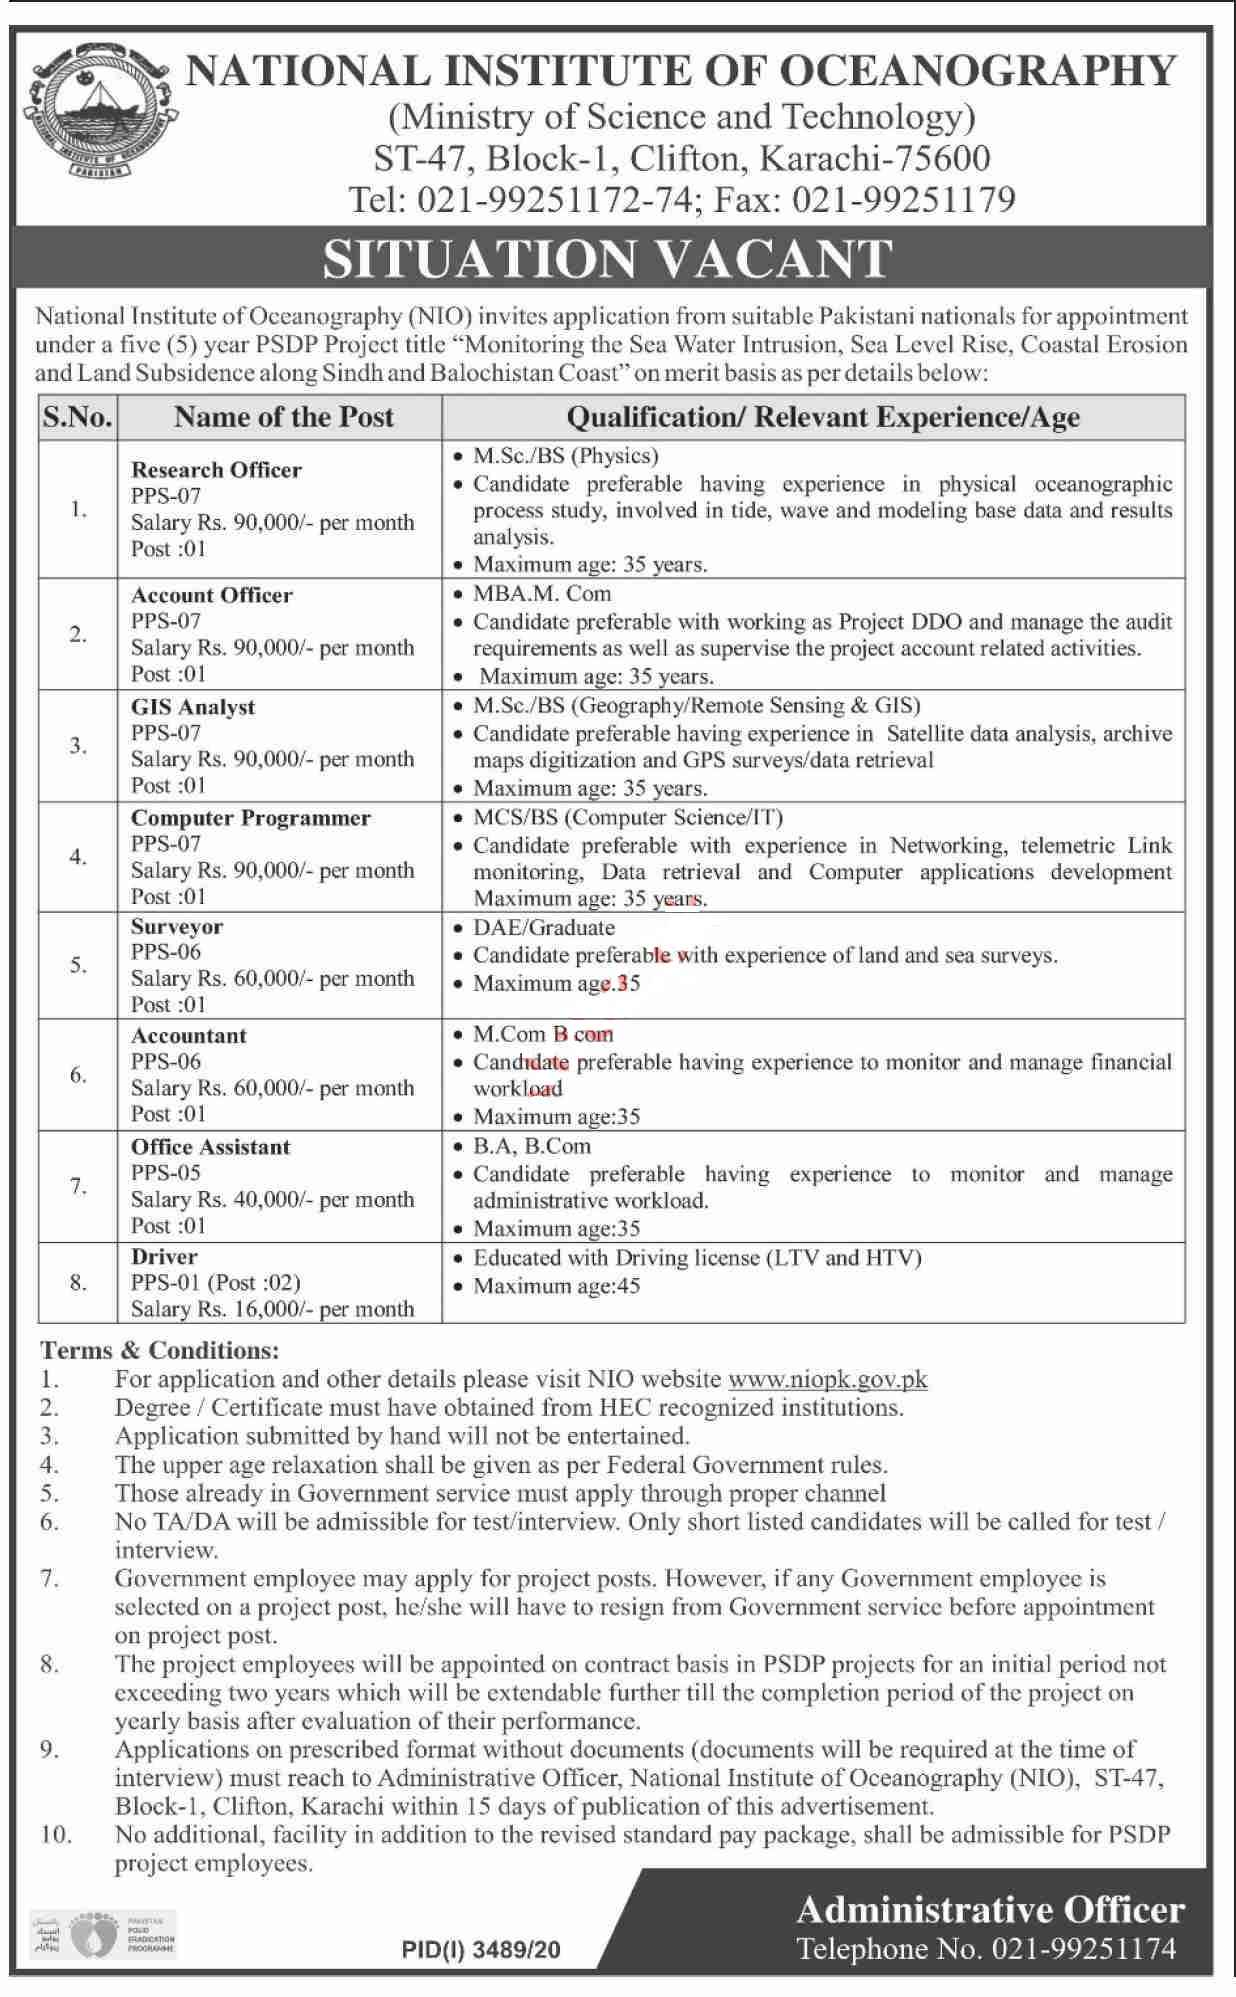 National Institute of Oceanography NIO Karachi Jobs 2021 for Research Officer, Account Officer, GIS Analyst, Computer Programmer, Surveyor, Accountant, Office Assistant and more